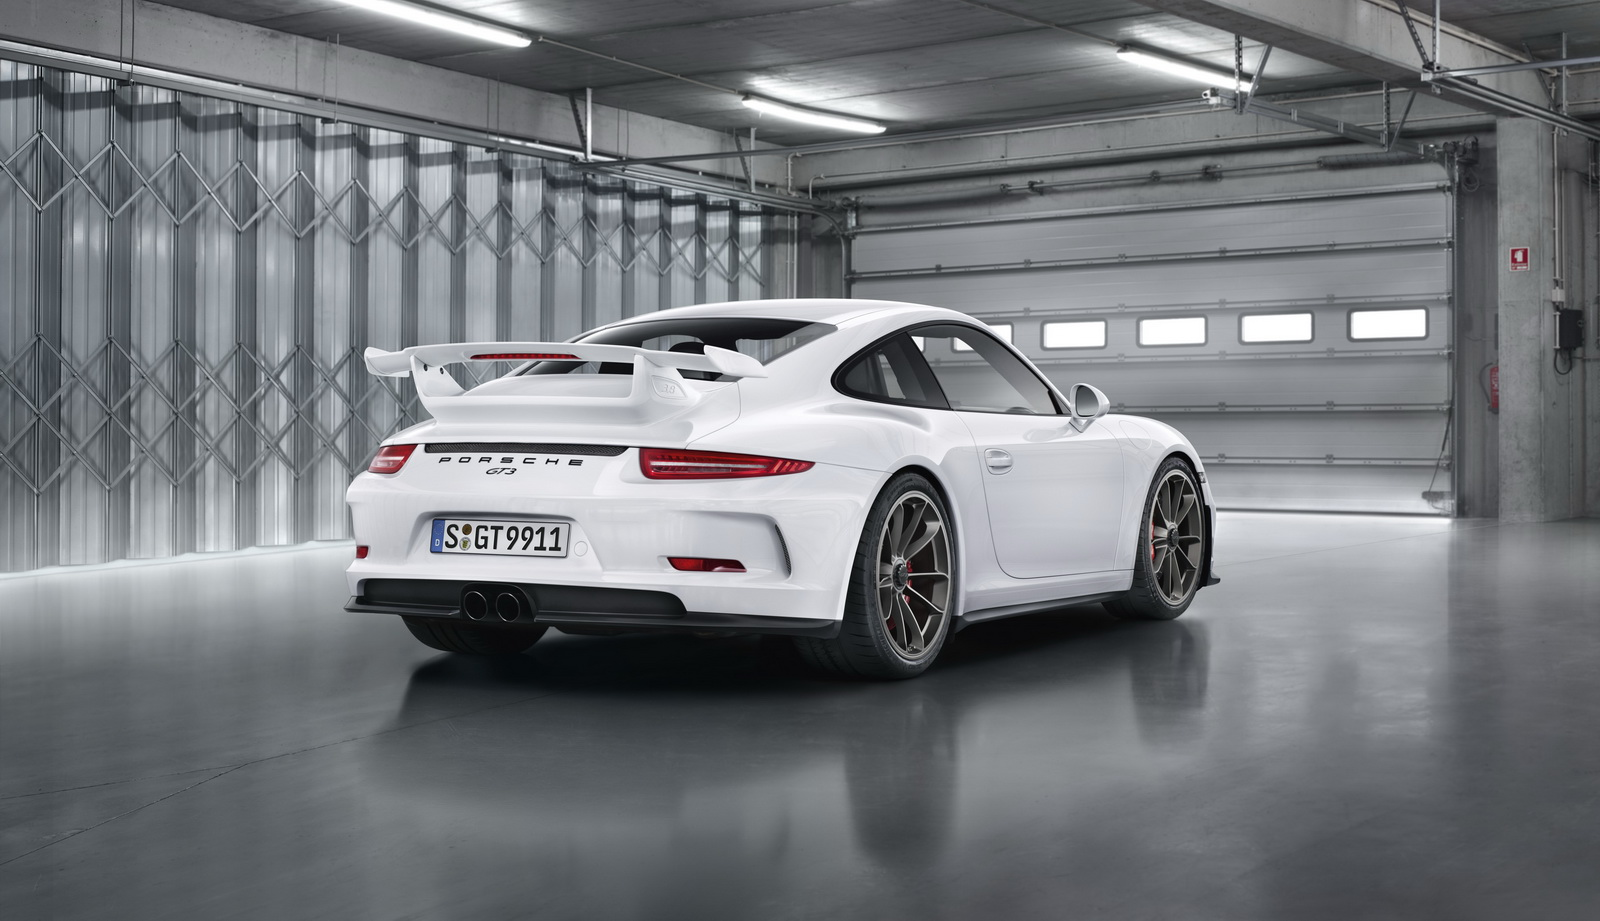 porsche extends 991 1 gt3 engine warranty to 10 years 120k. Black Bedroom Furniture Sets. Home Design Ideas